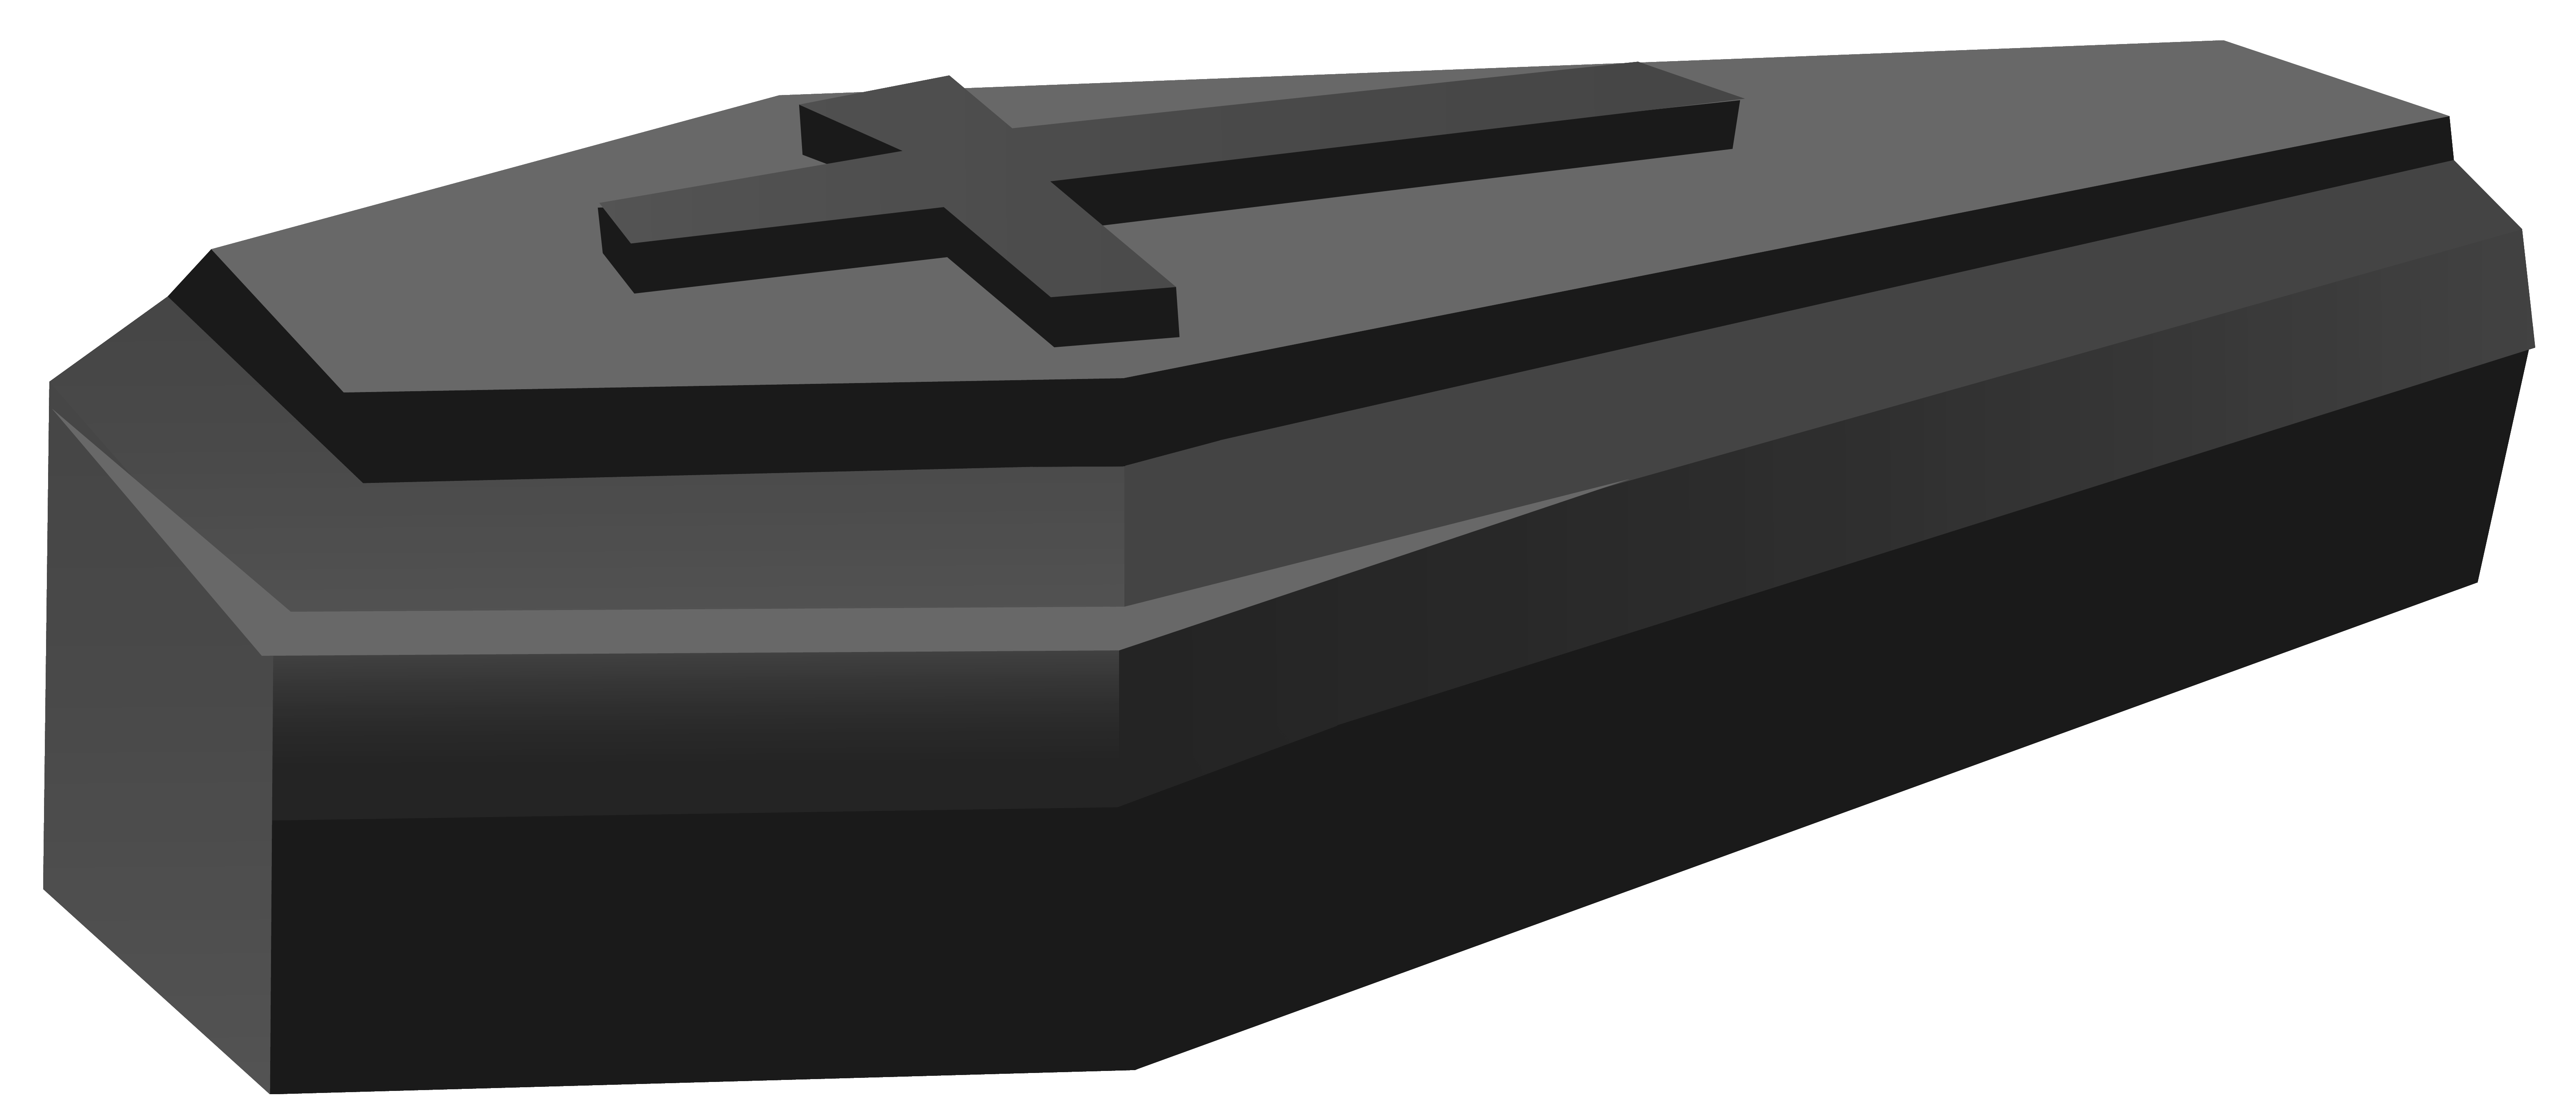 Black Coffin PNG Clipart Image.